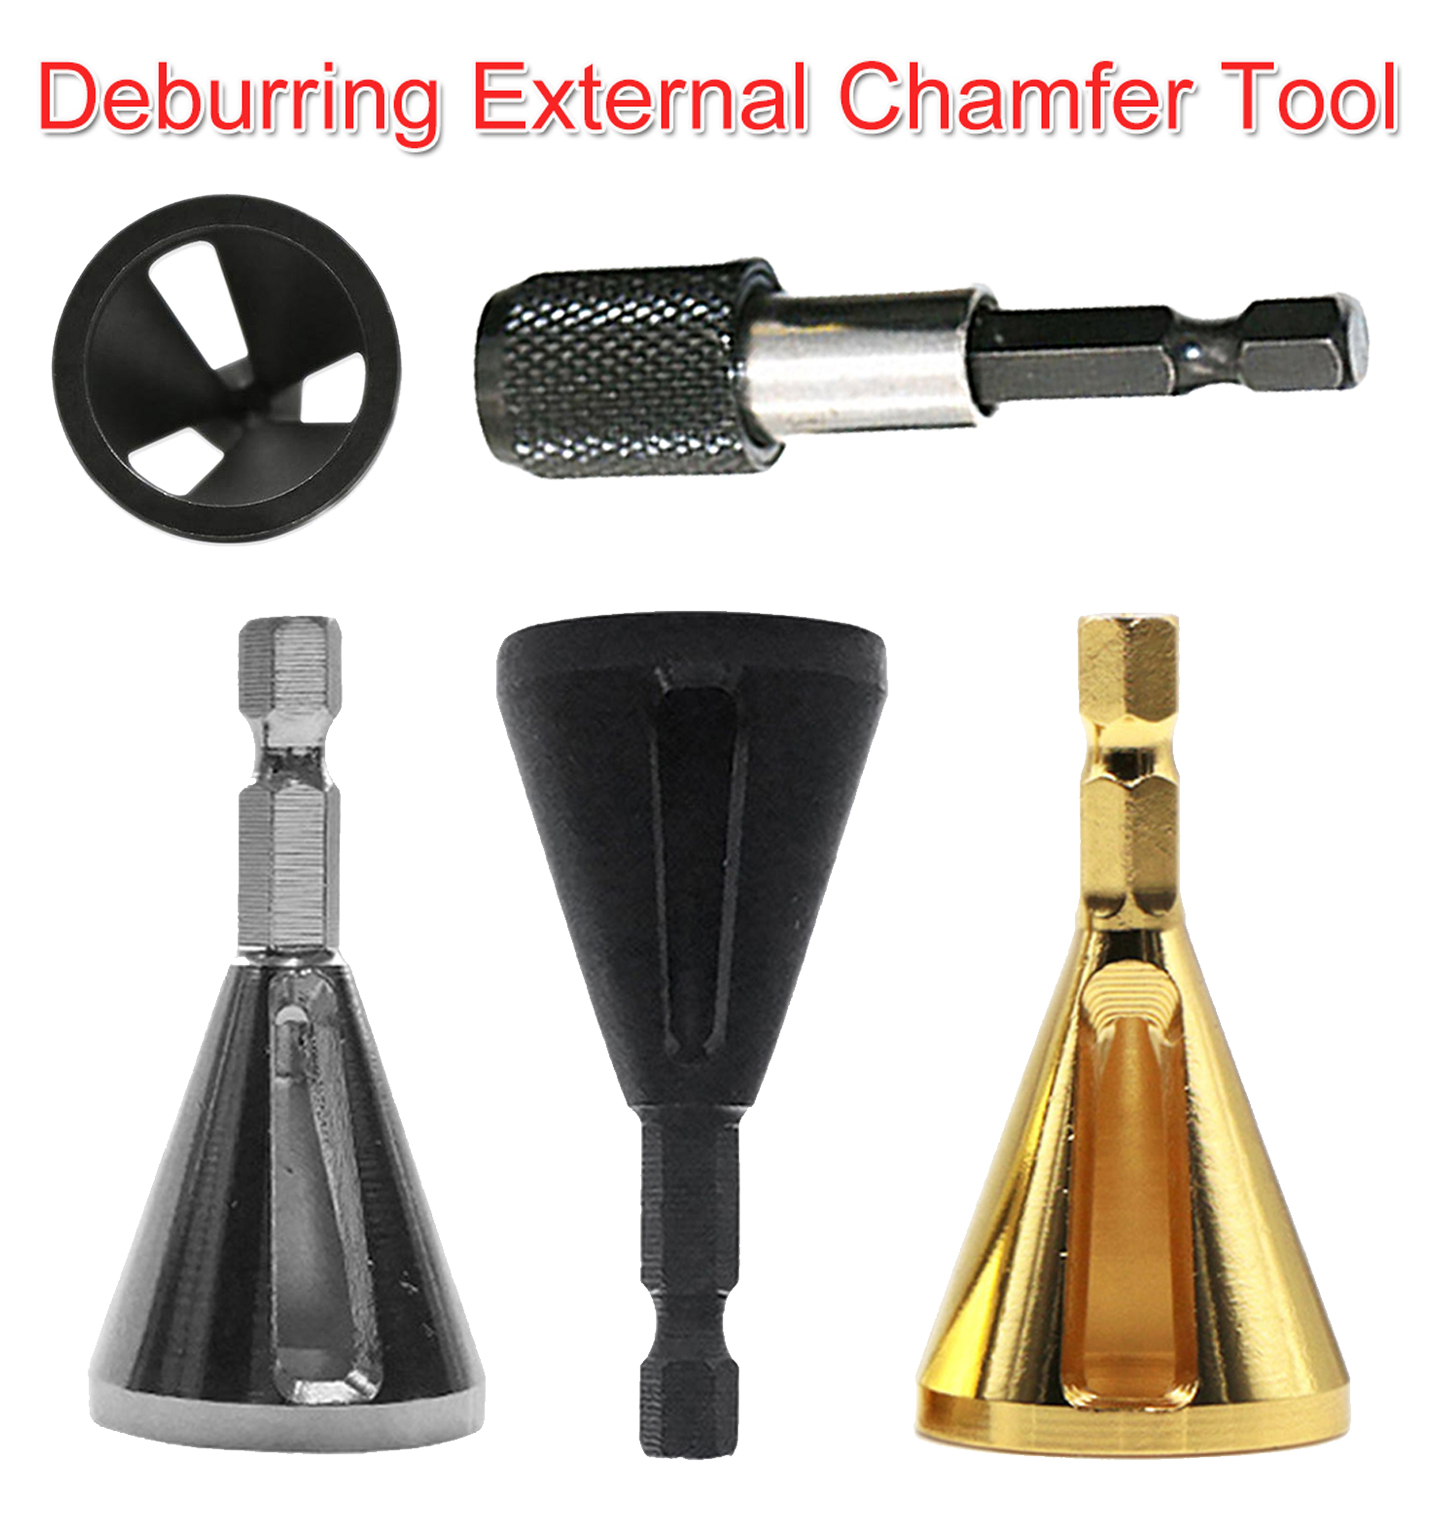 Deburring External Chamfer Tool 1/4 Hex Stainless Steel Remove Burr Tool Drill Bit For Stainless Steel/ Wood High Hardness